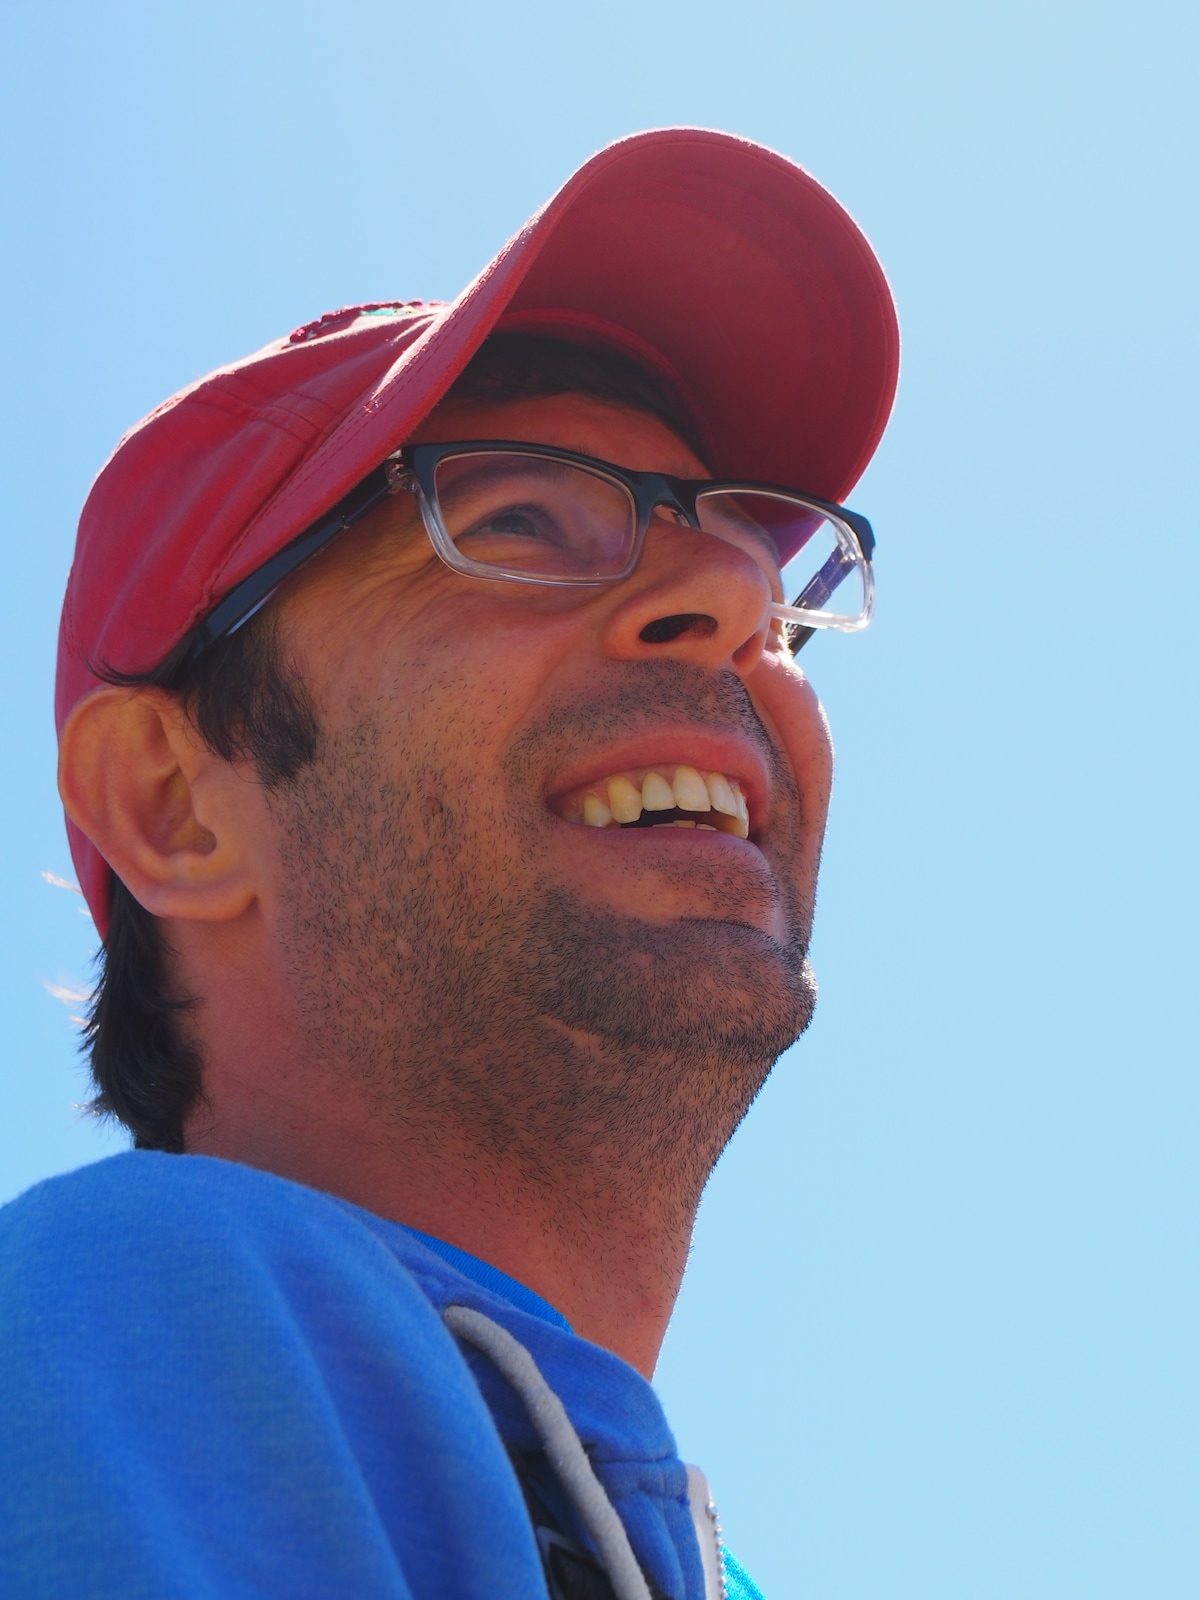 Miguel from Tavira